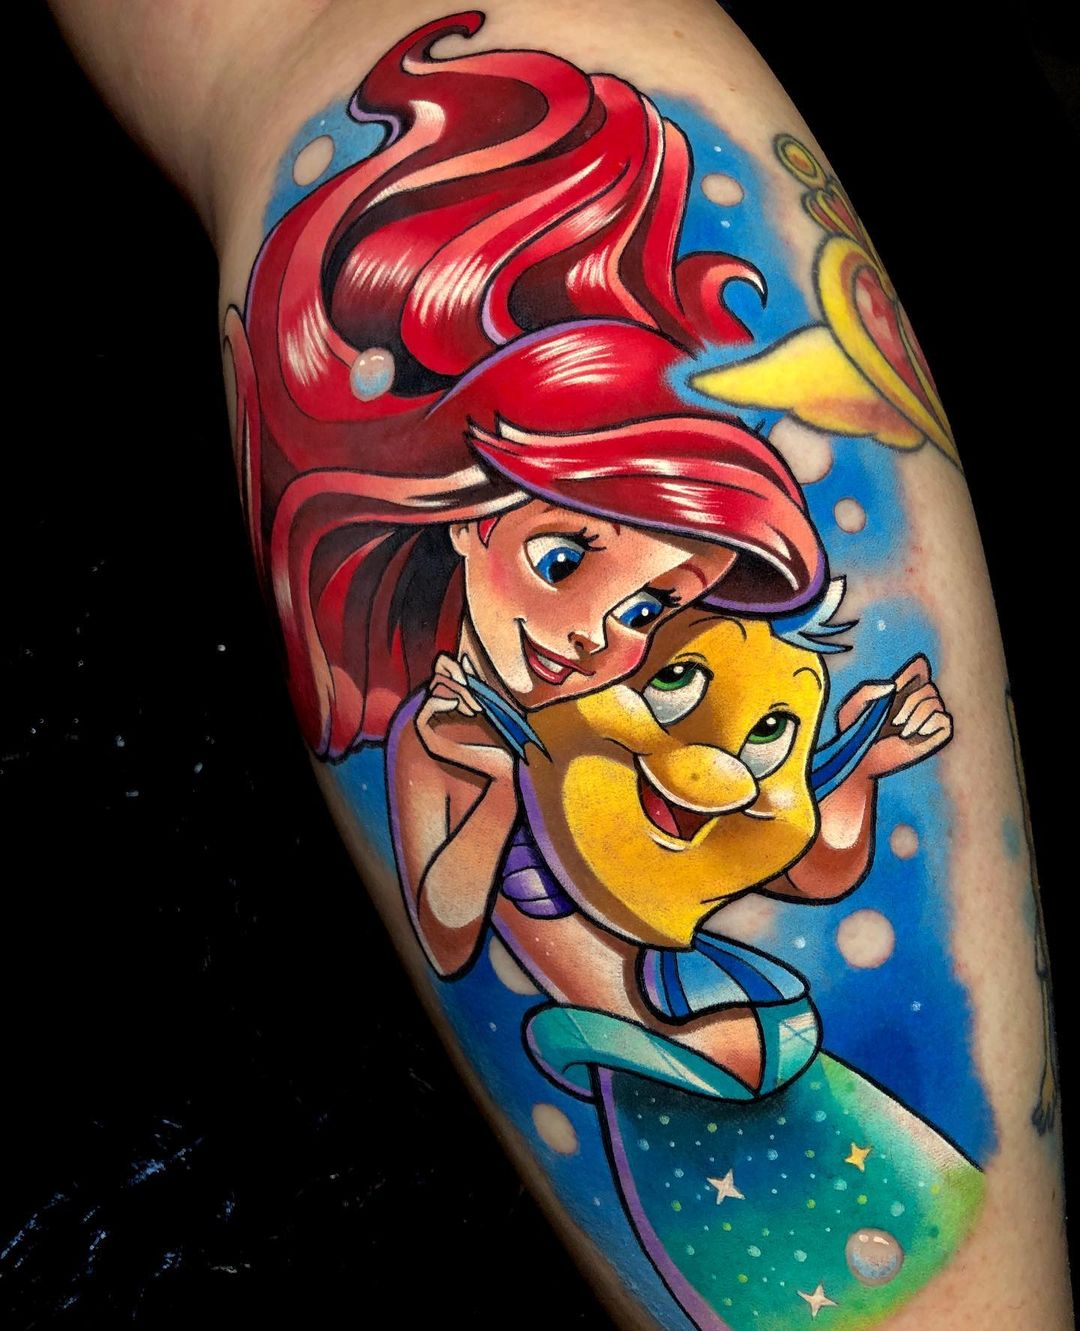 Tattoo sleeves in the style of Disney cartoon - the little mermaid